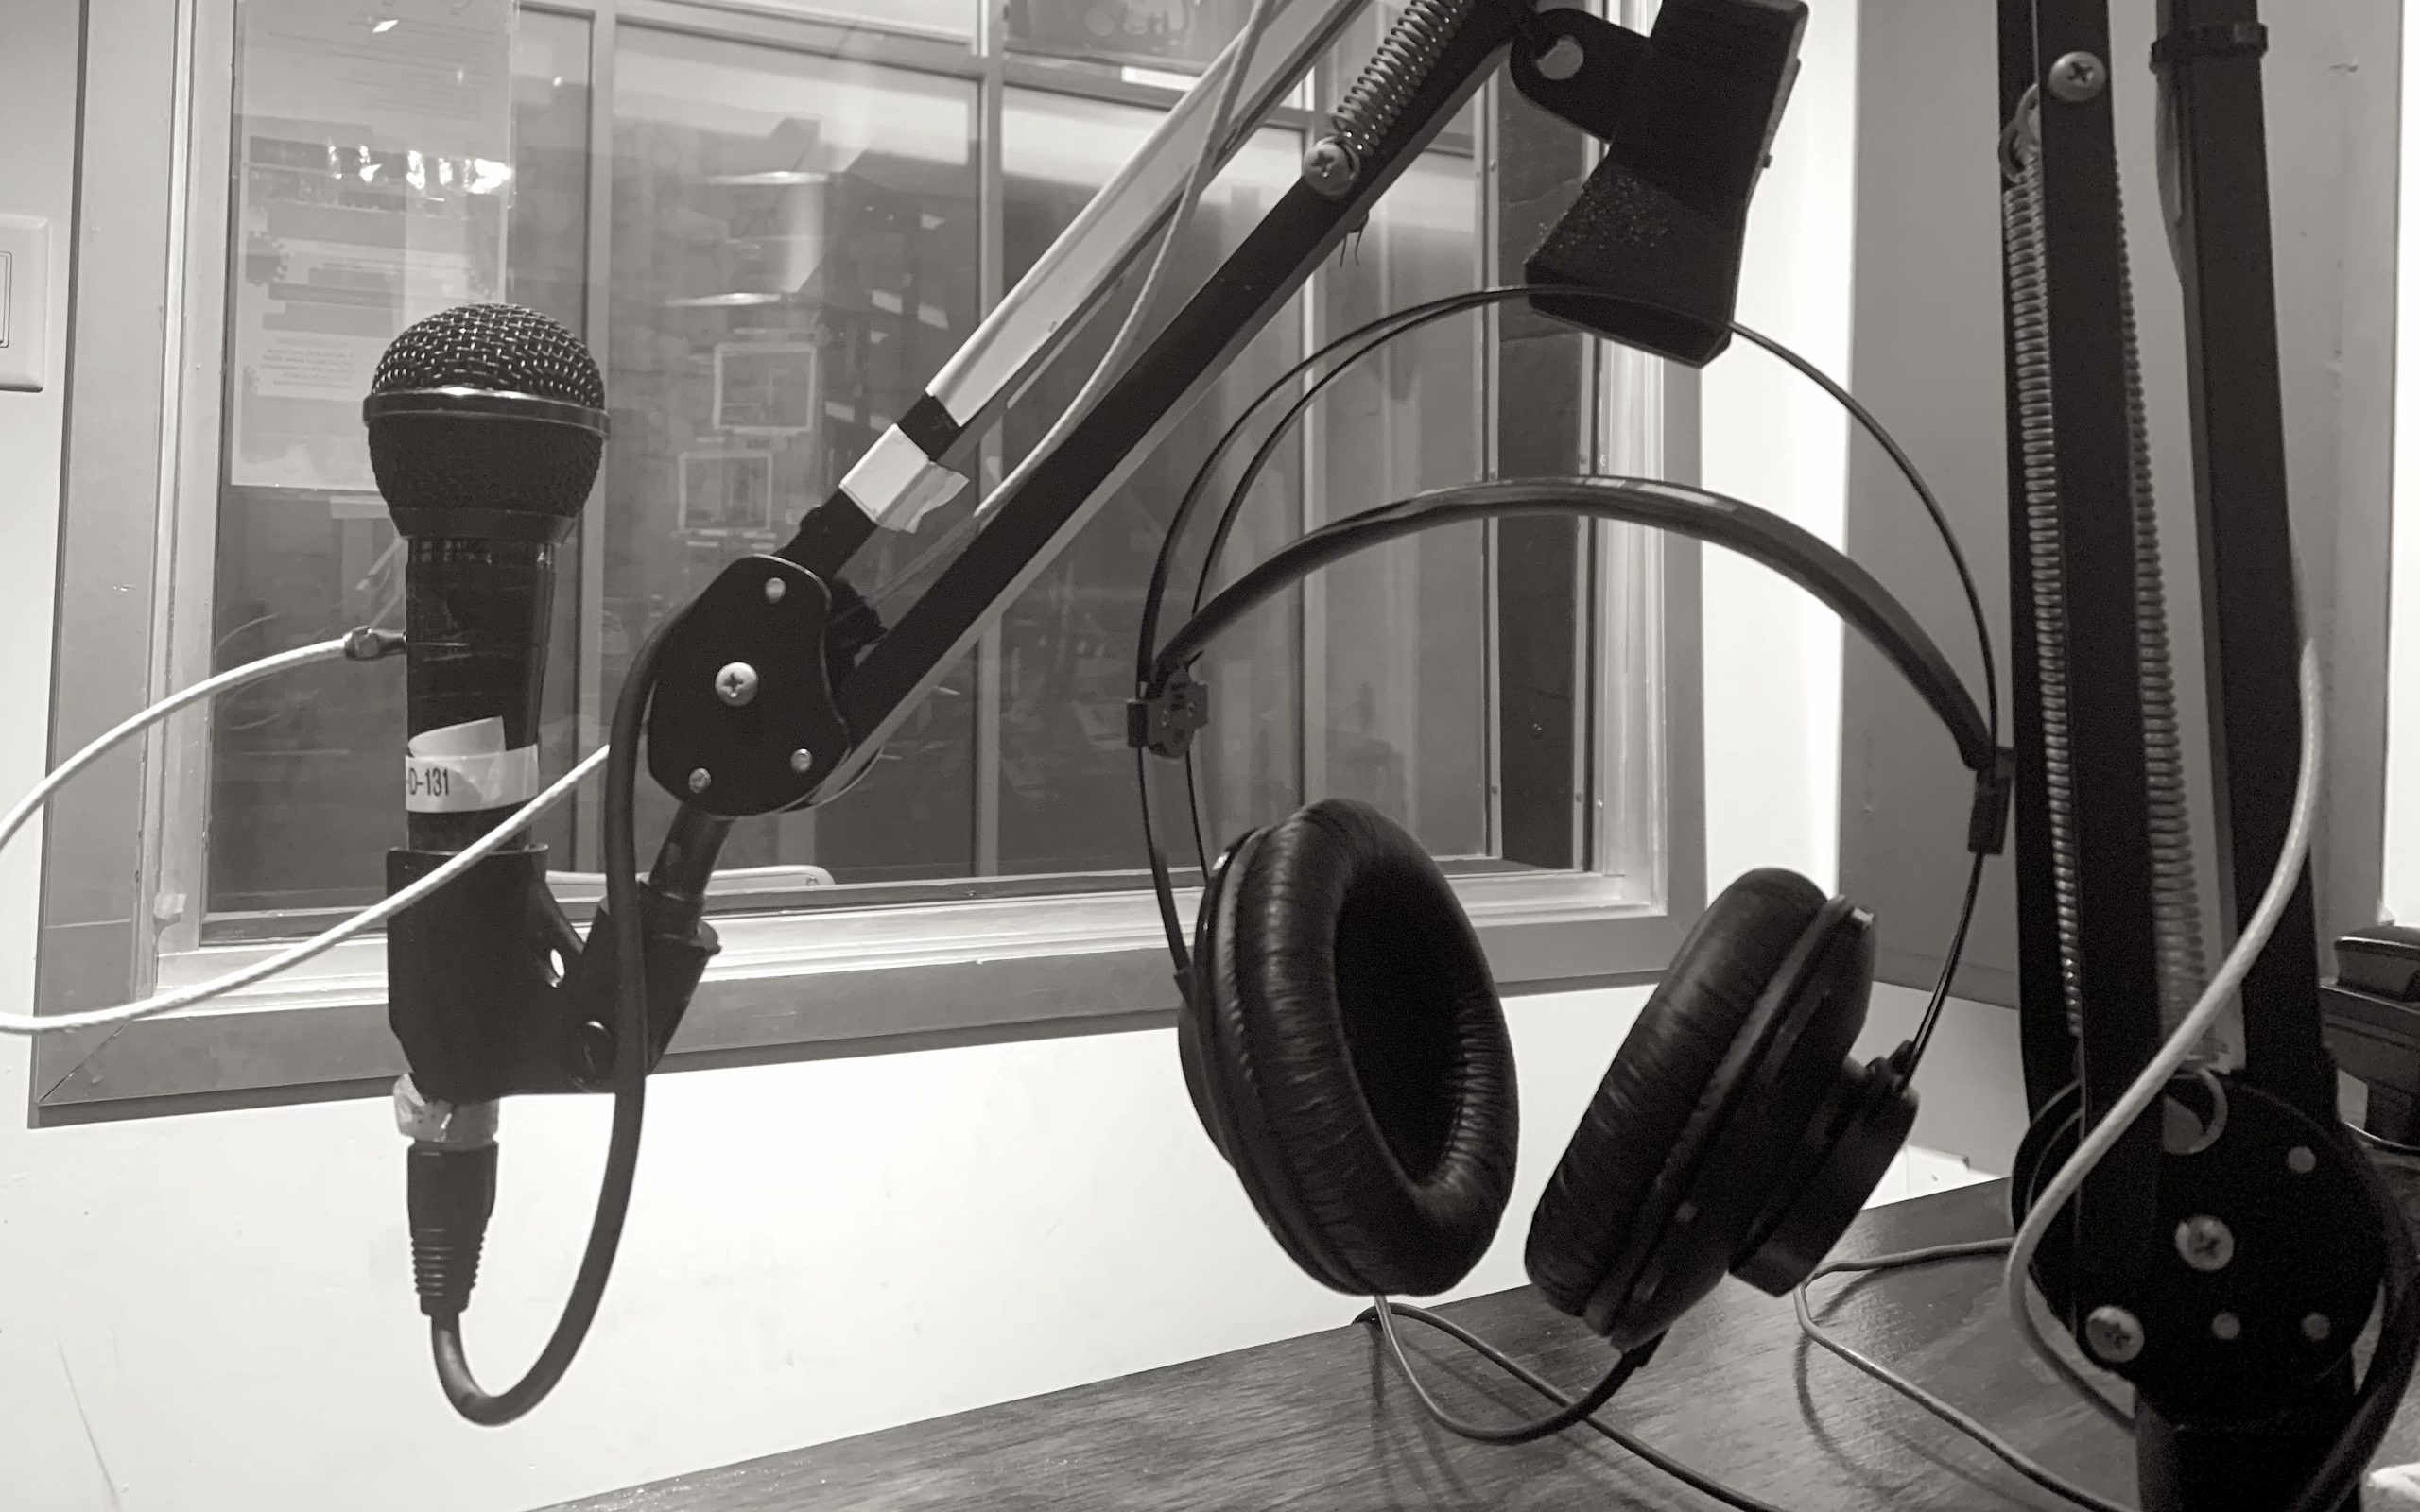 This image shows a close up of a microphone and headphones on a boom arm stand above a wooden desk, with a window in the background